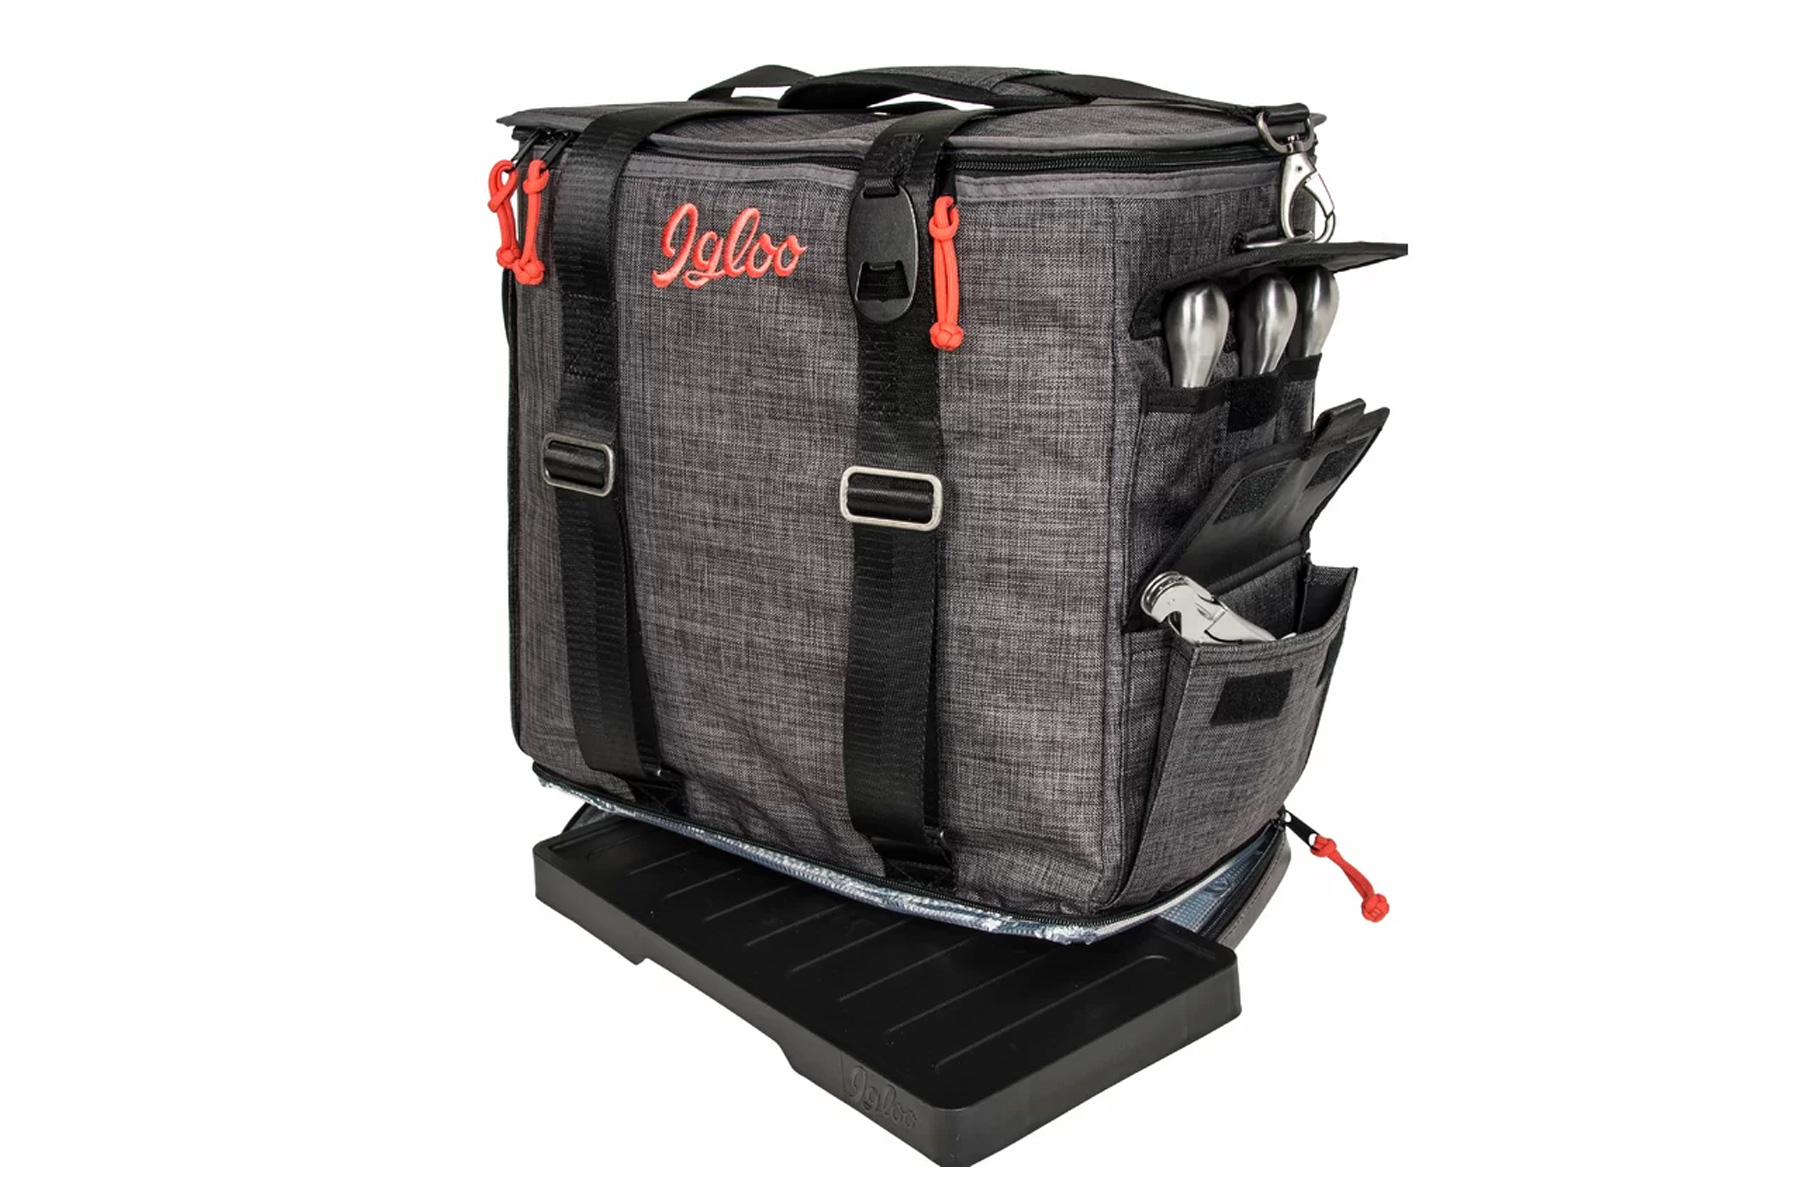 Grey and red cooler bag